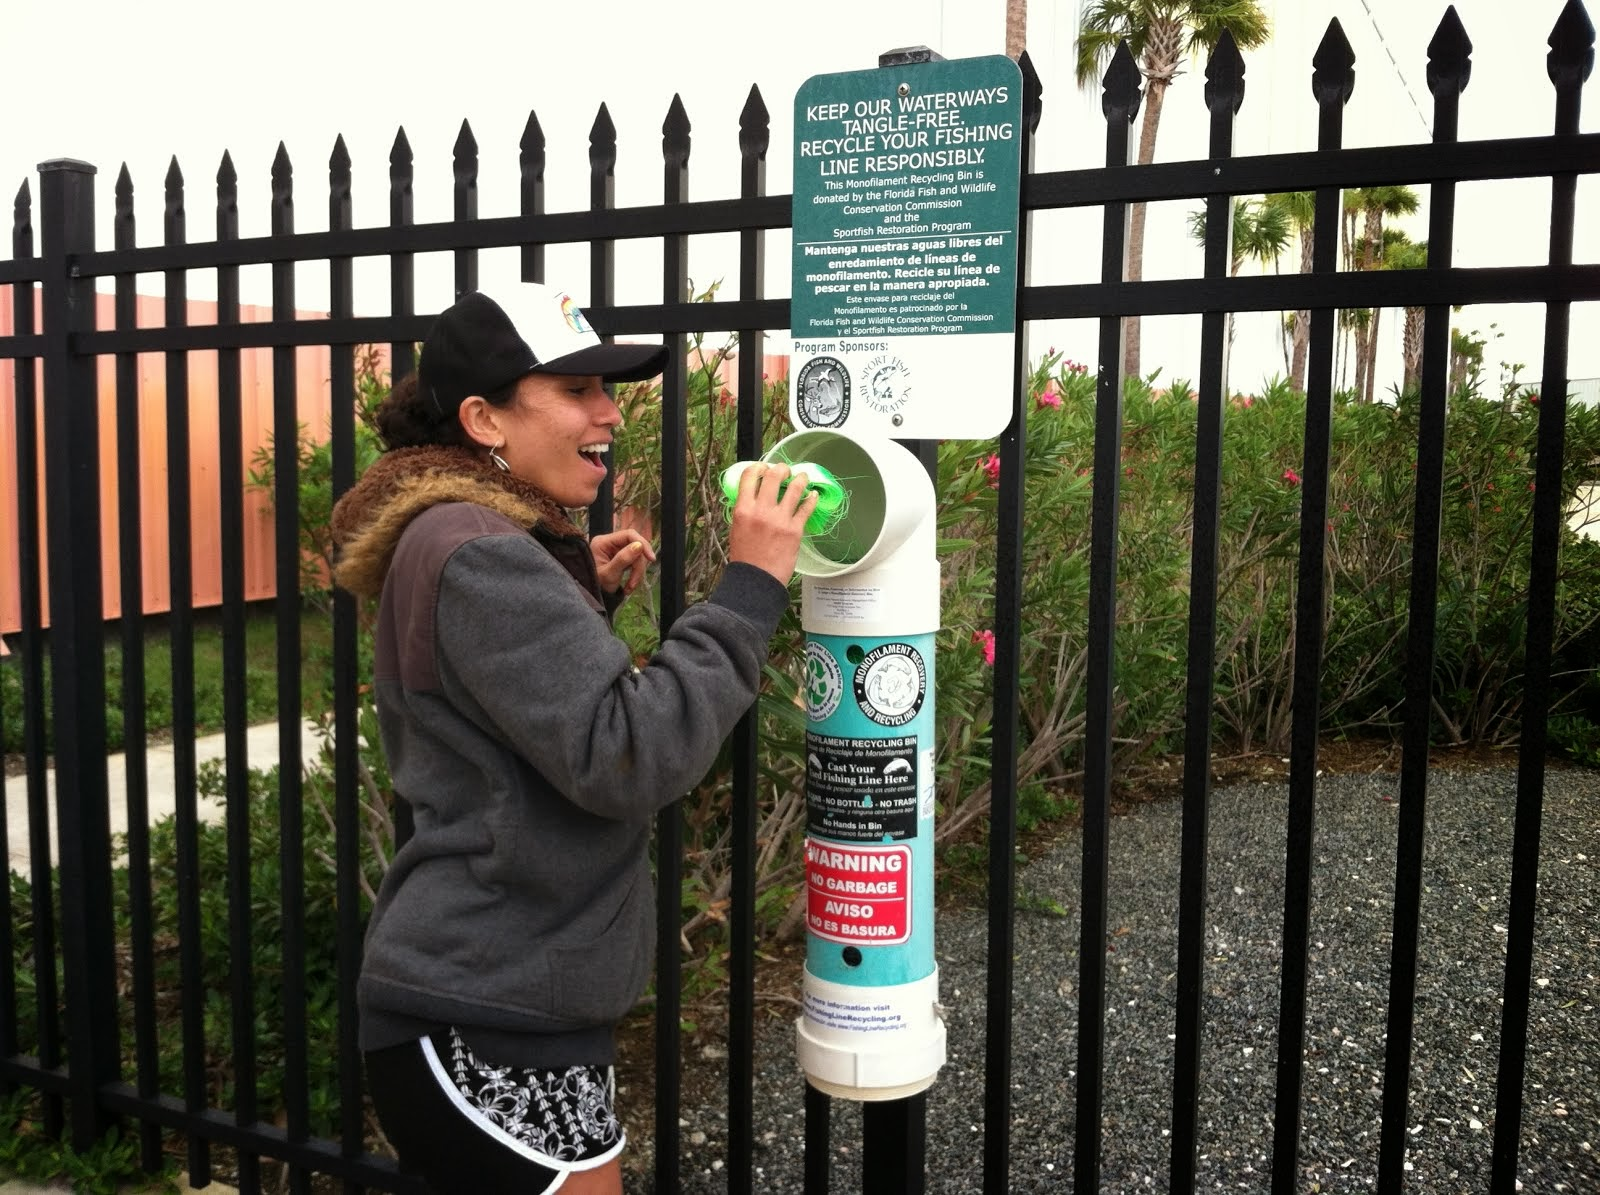 Florida's Monofilament Recycling Tubes